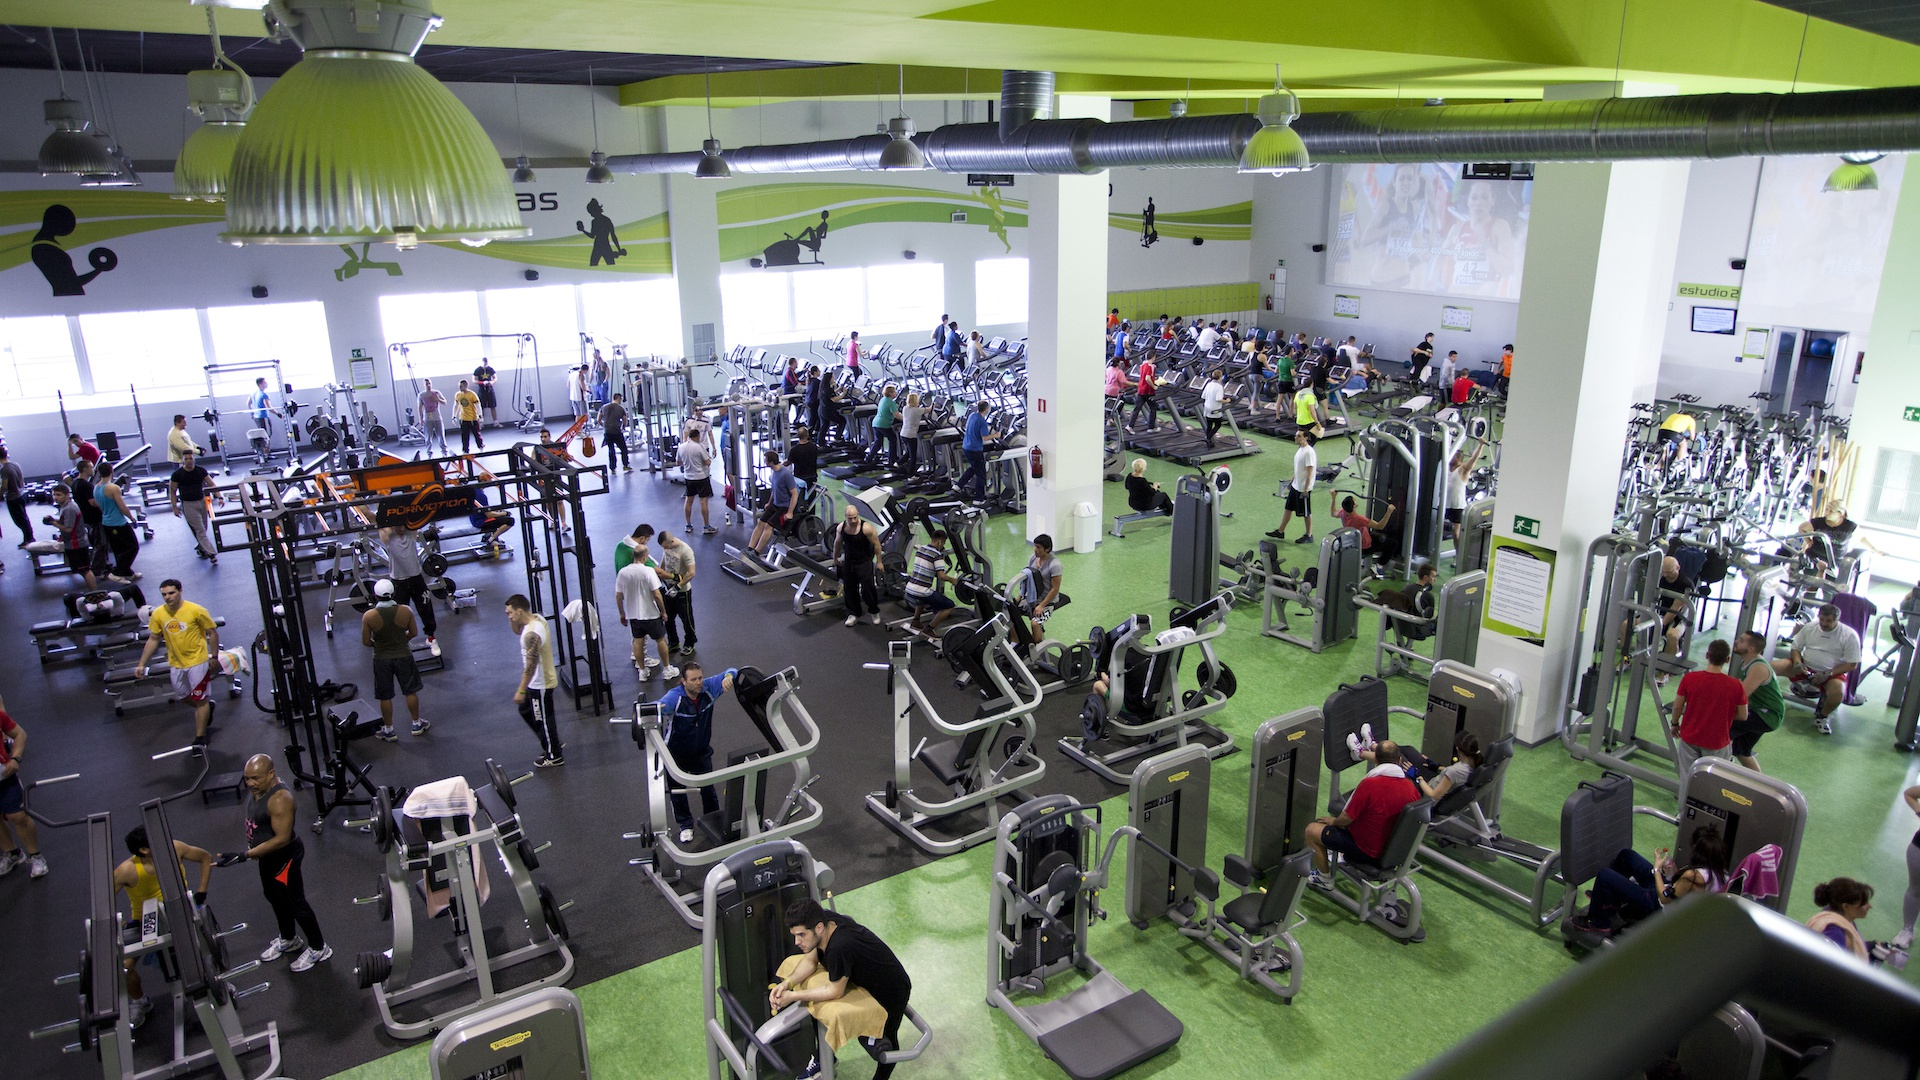 gimnasio en vallecas madrid